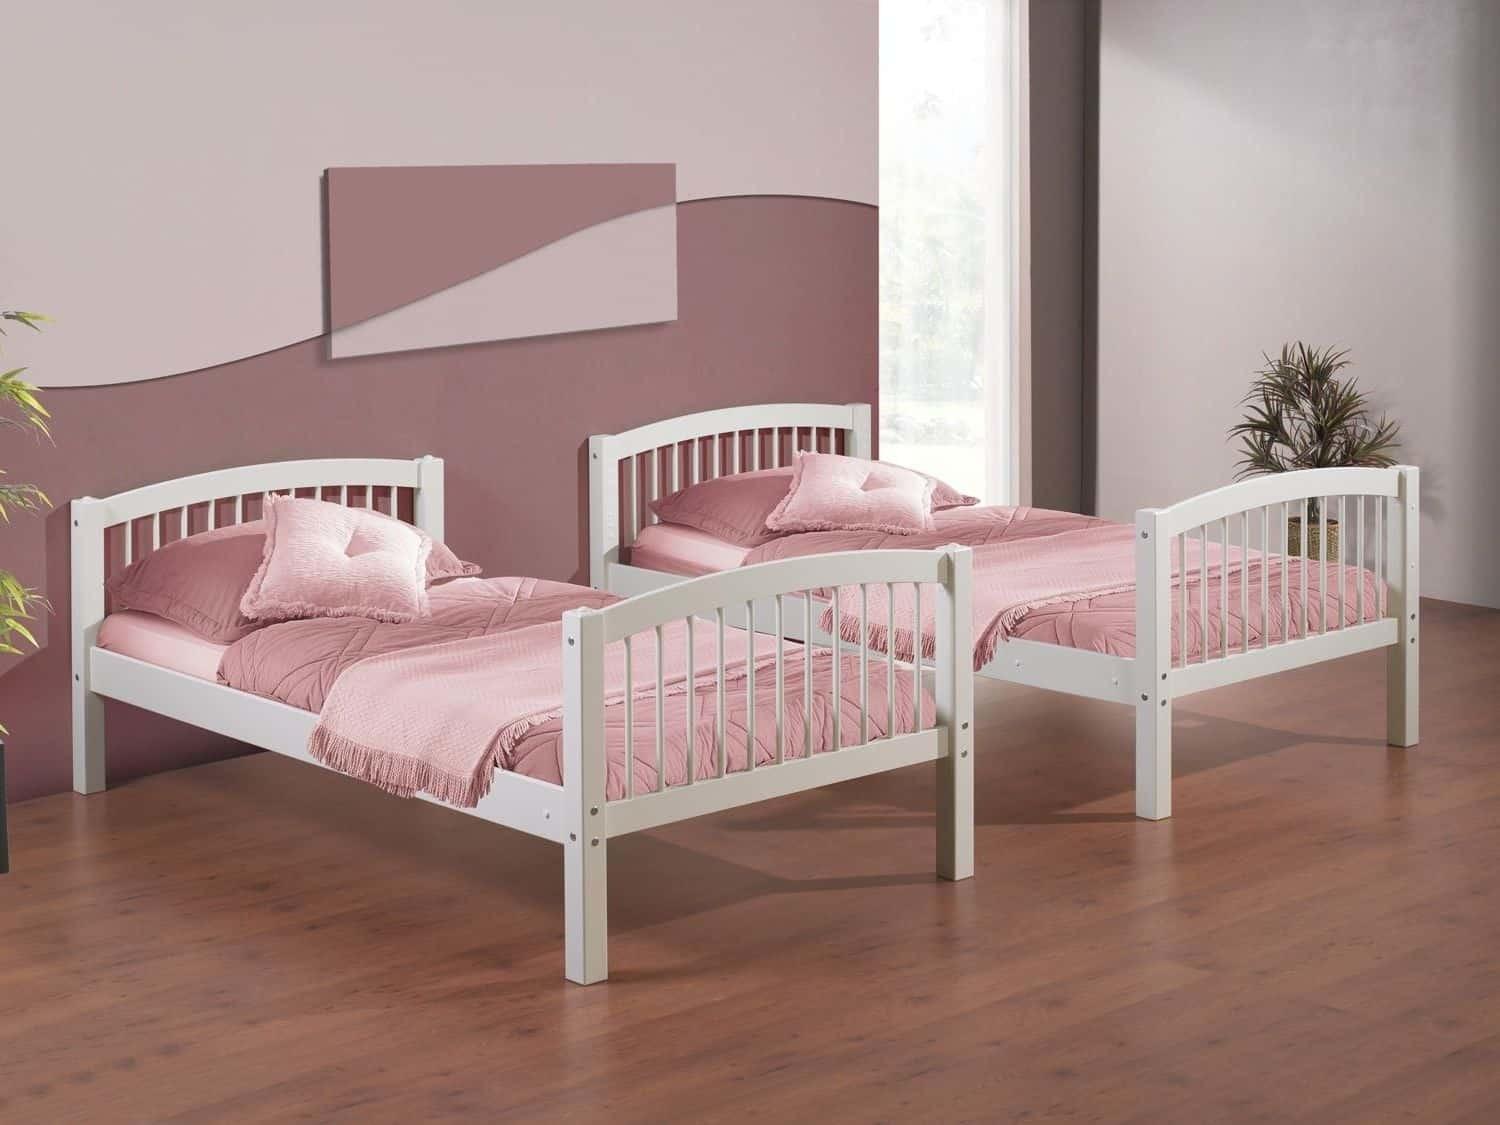 Simply White Bed Frame Soft Pink Colors Twin